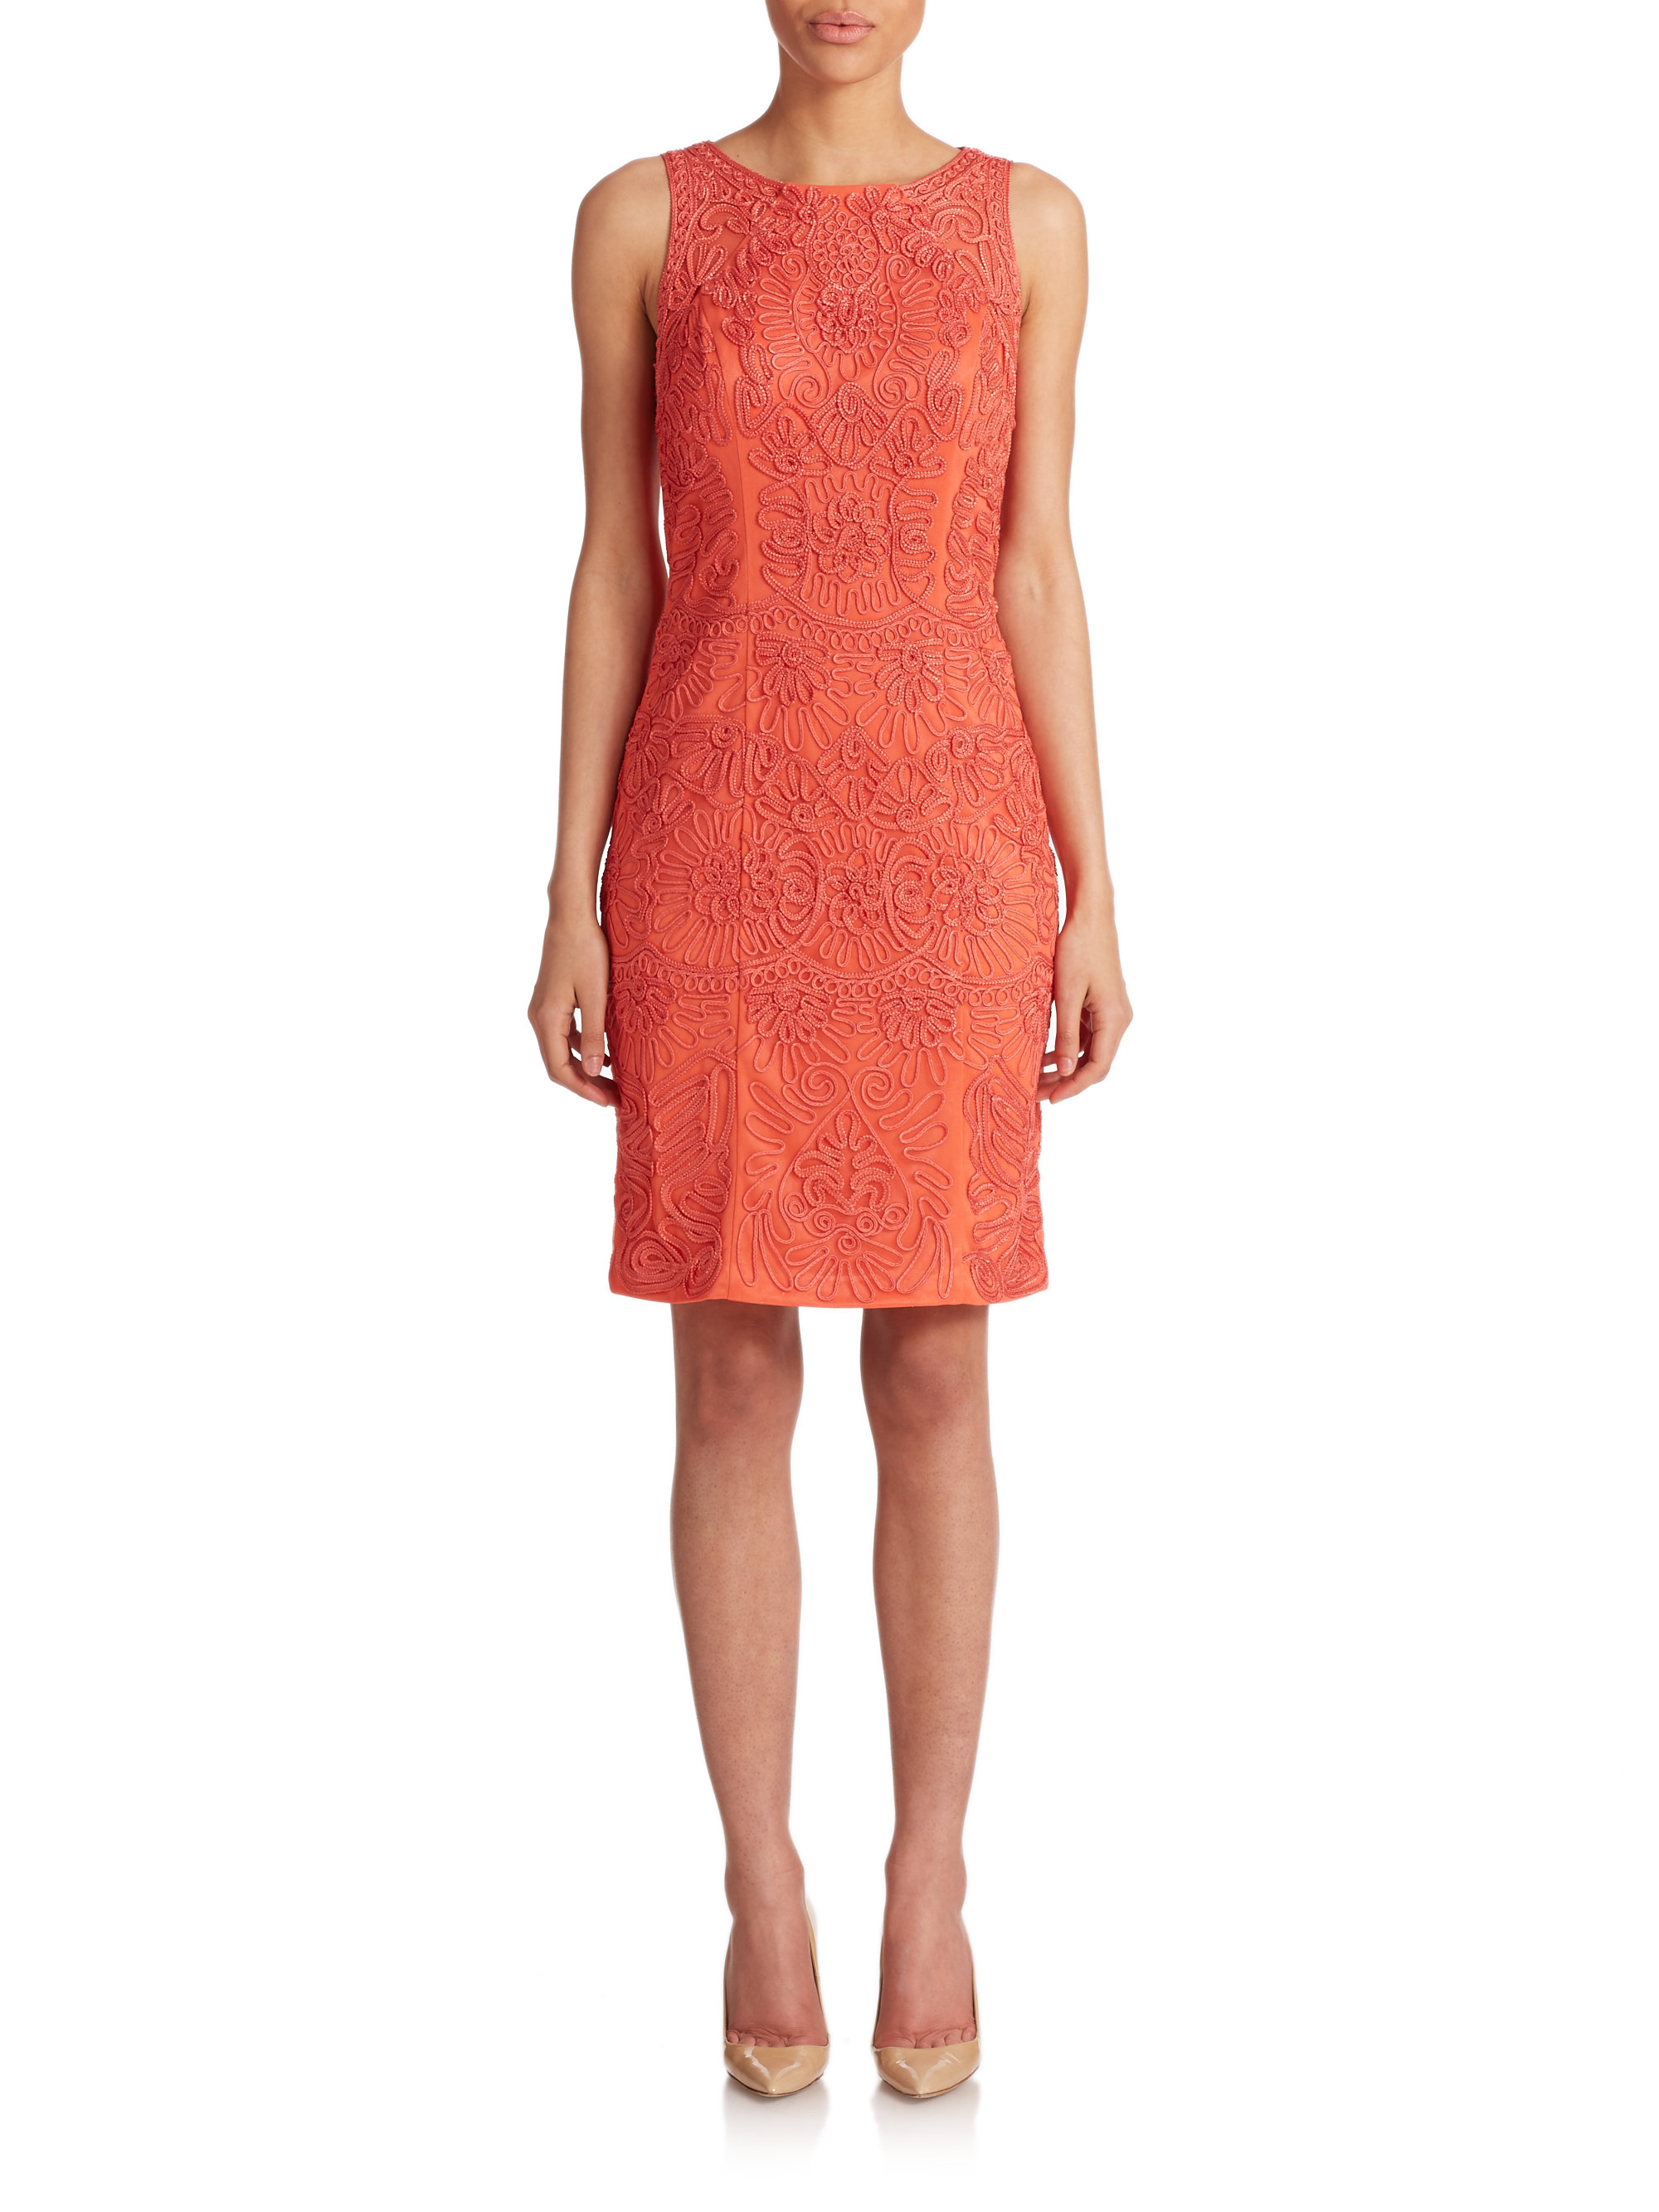 Lyst sue wong soutache embroidered dress in red